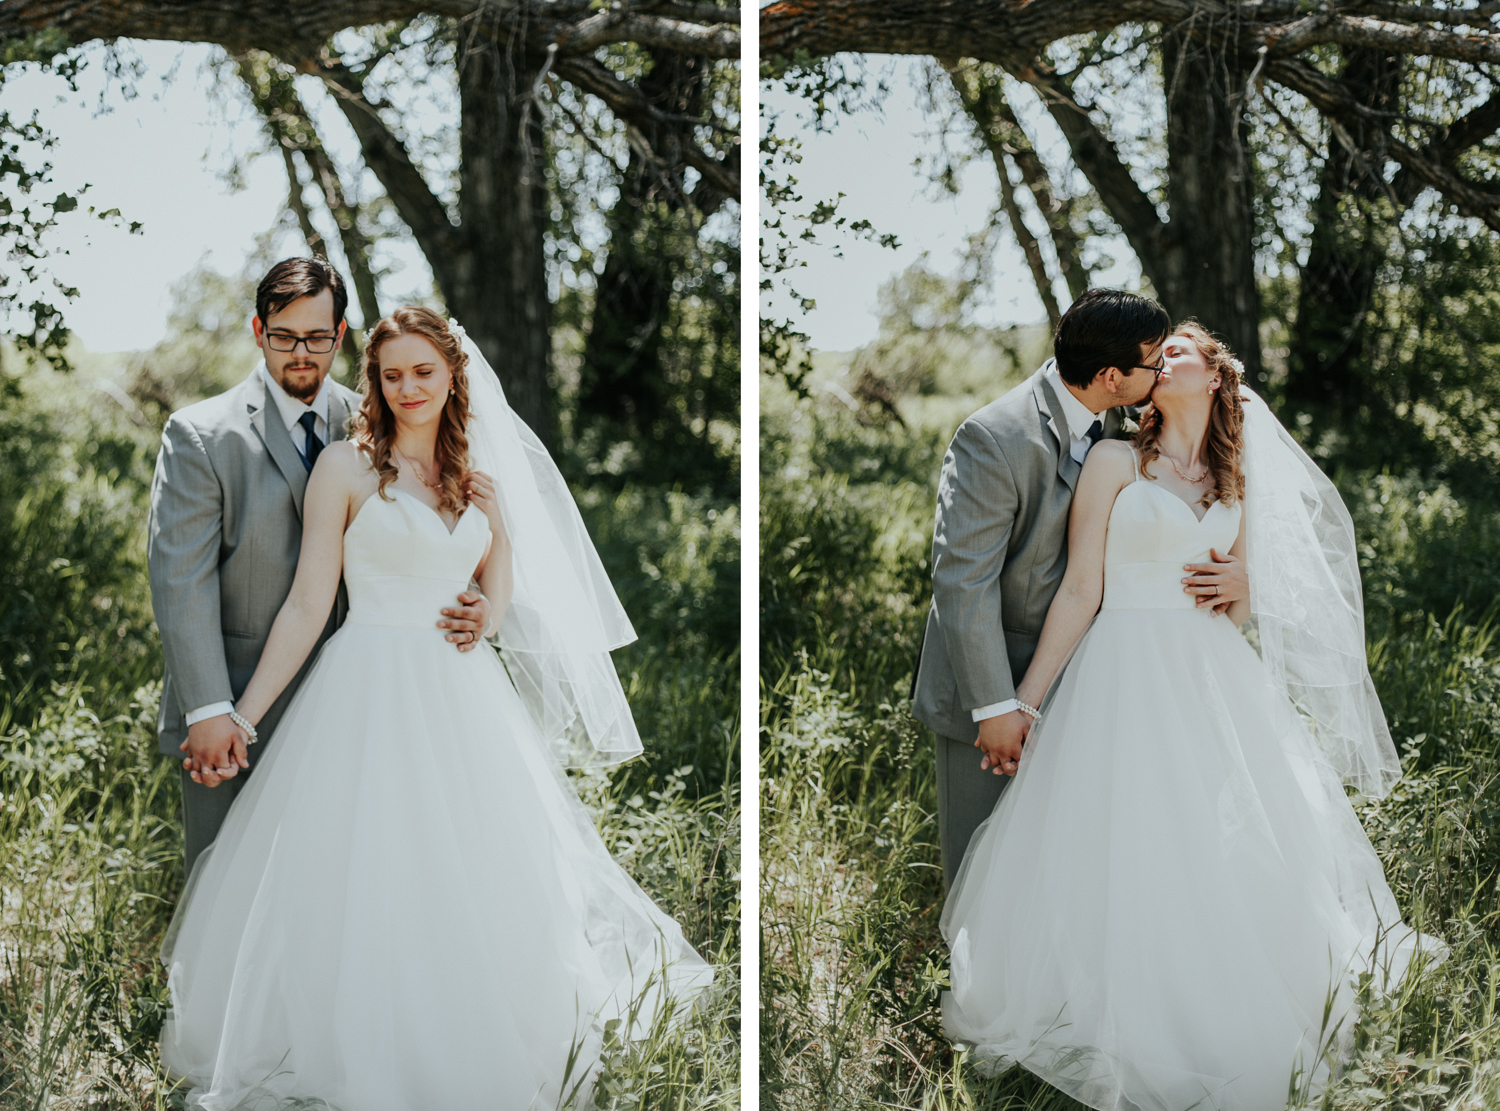 lethbridge-wedding-photographer-love-and-be-loved-photography-dan-tynnea-picture-image-photo-139.jpg